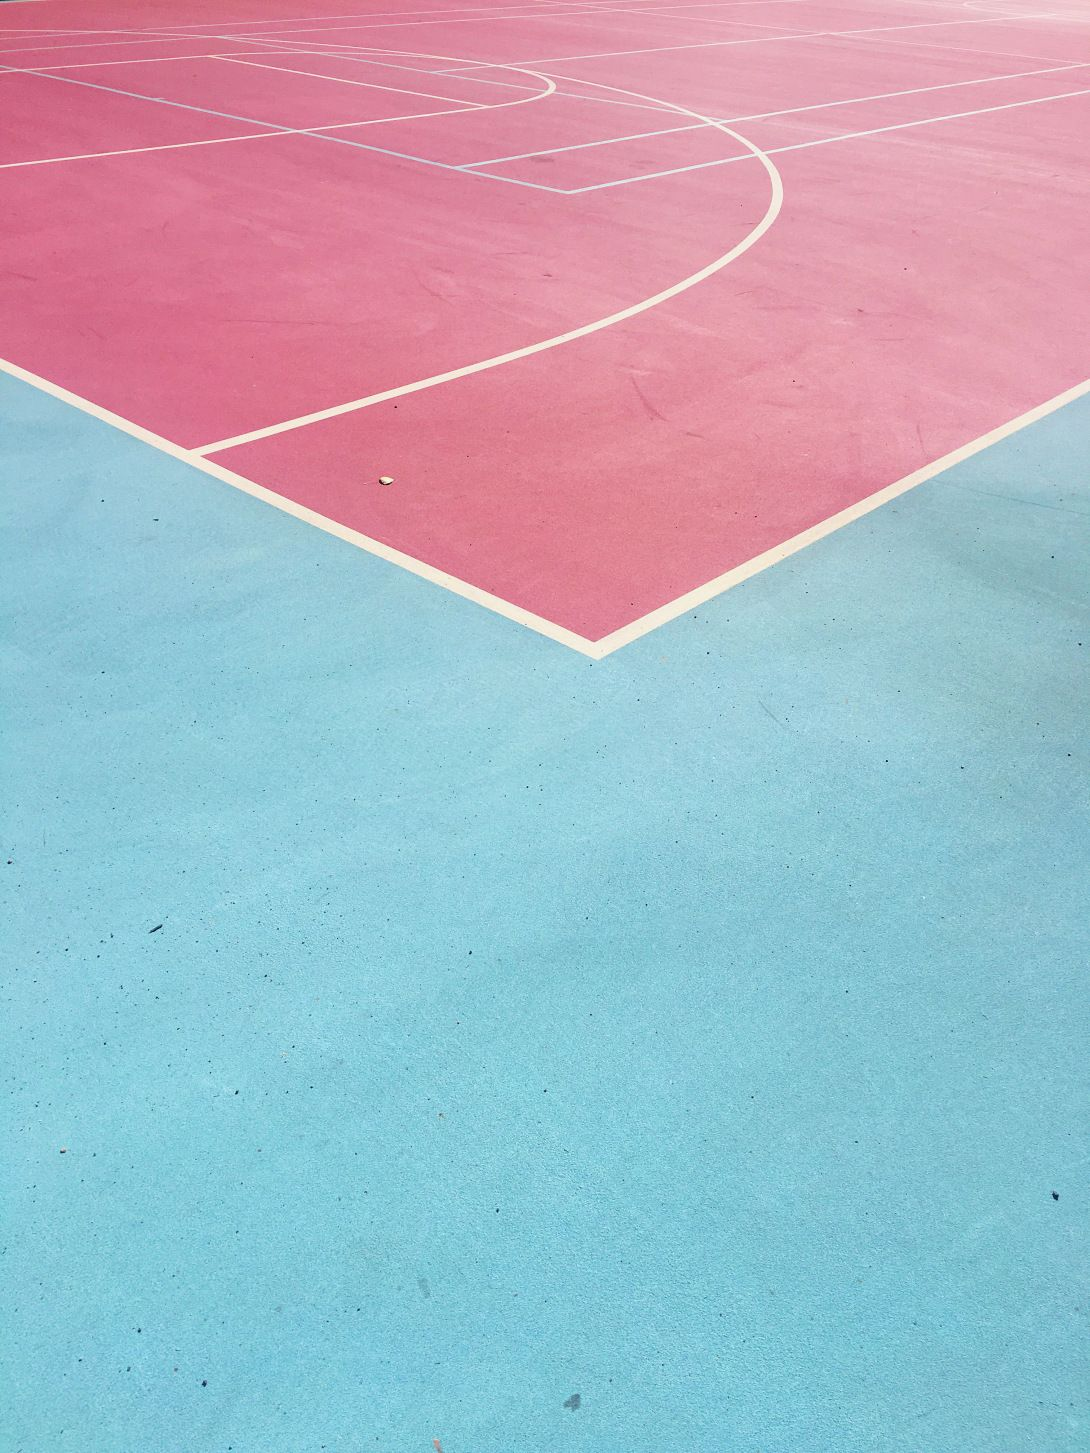 Pin By Eyespythree On Color Palette The Sporting Life Basketball Court Pink